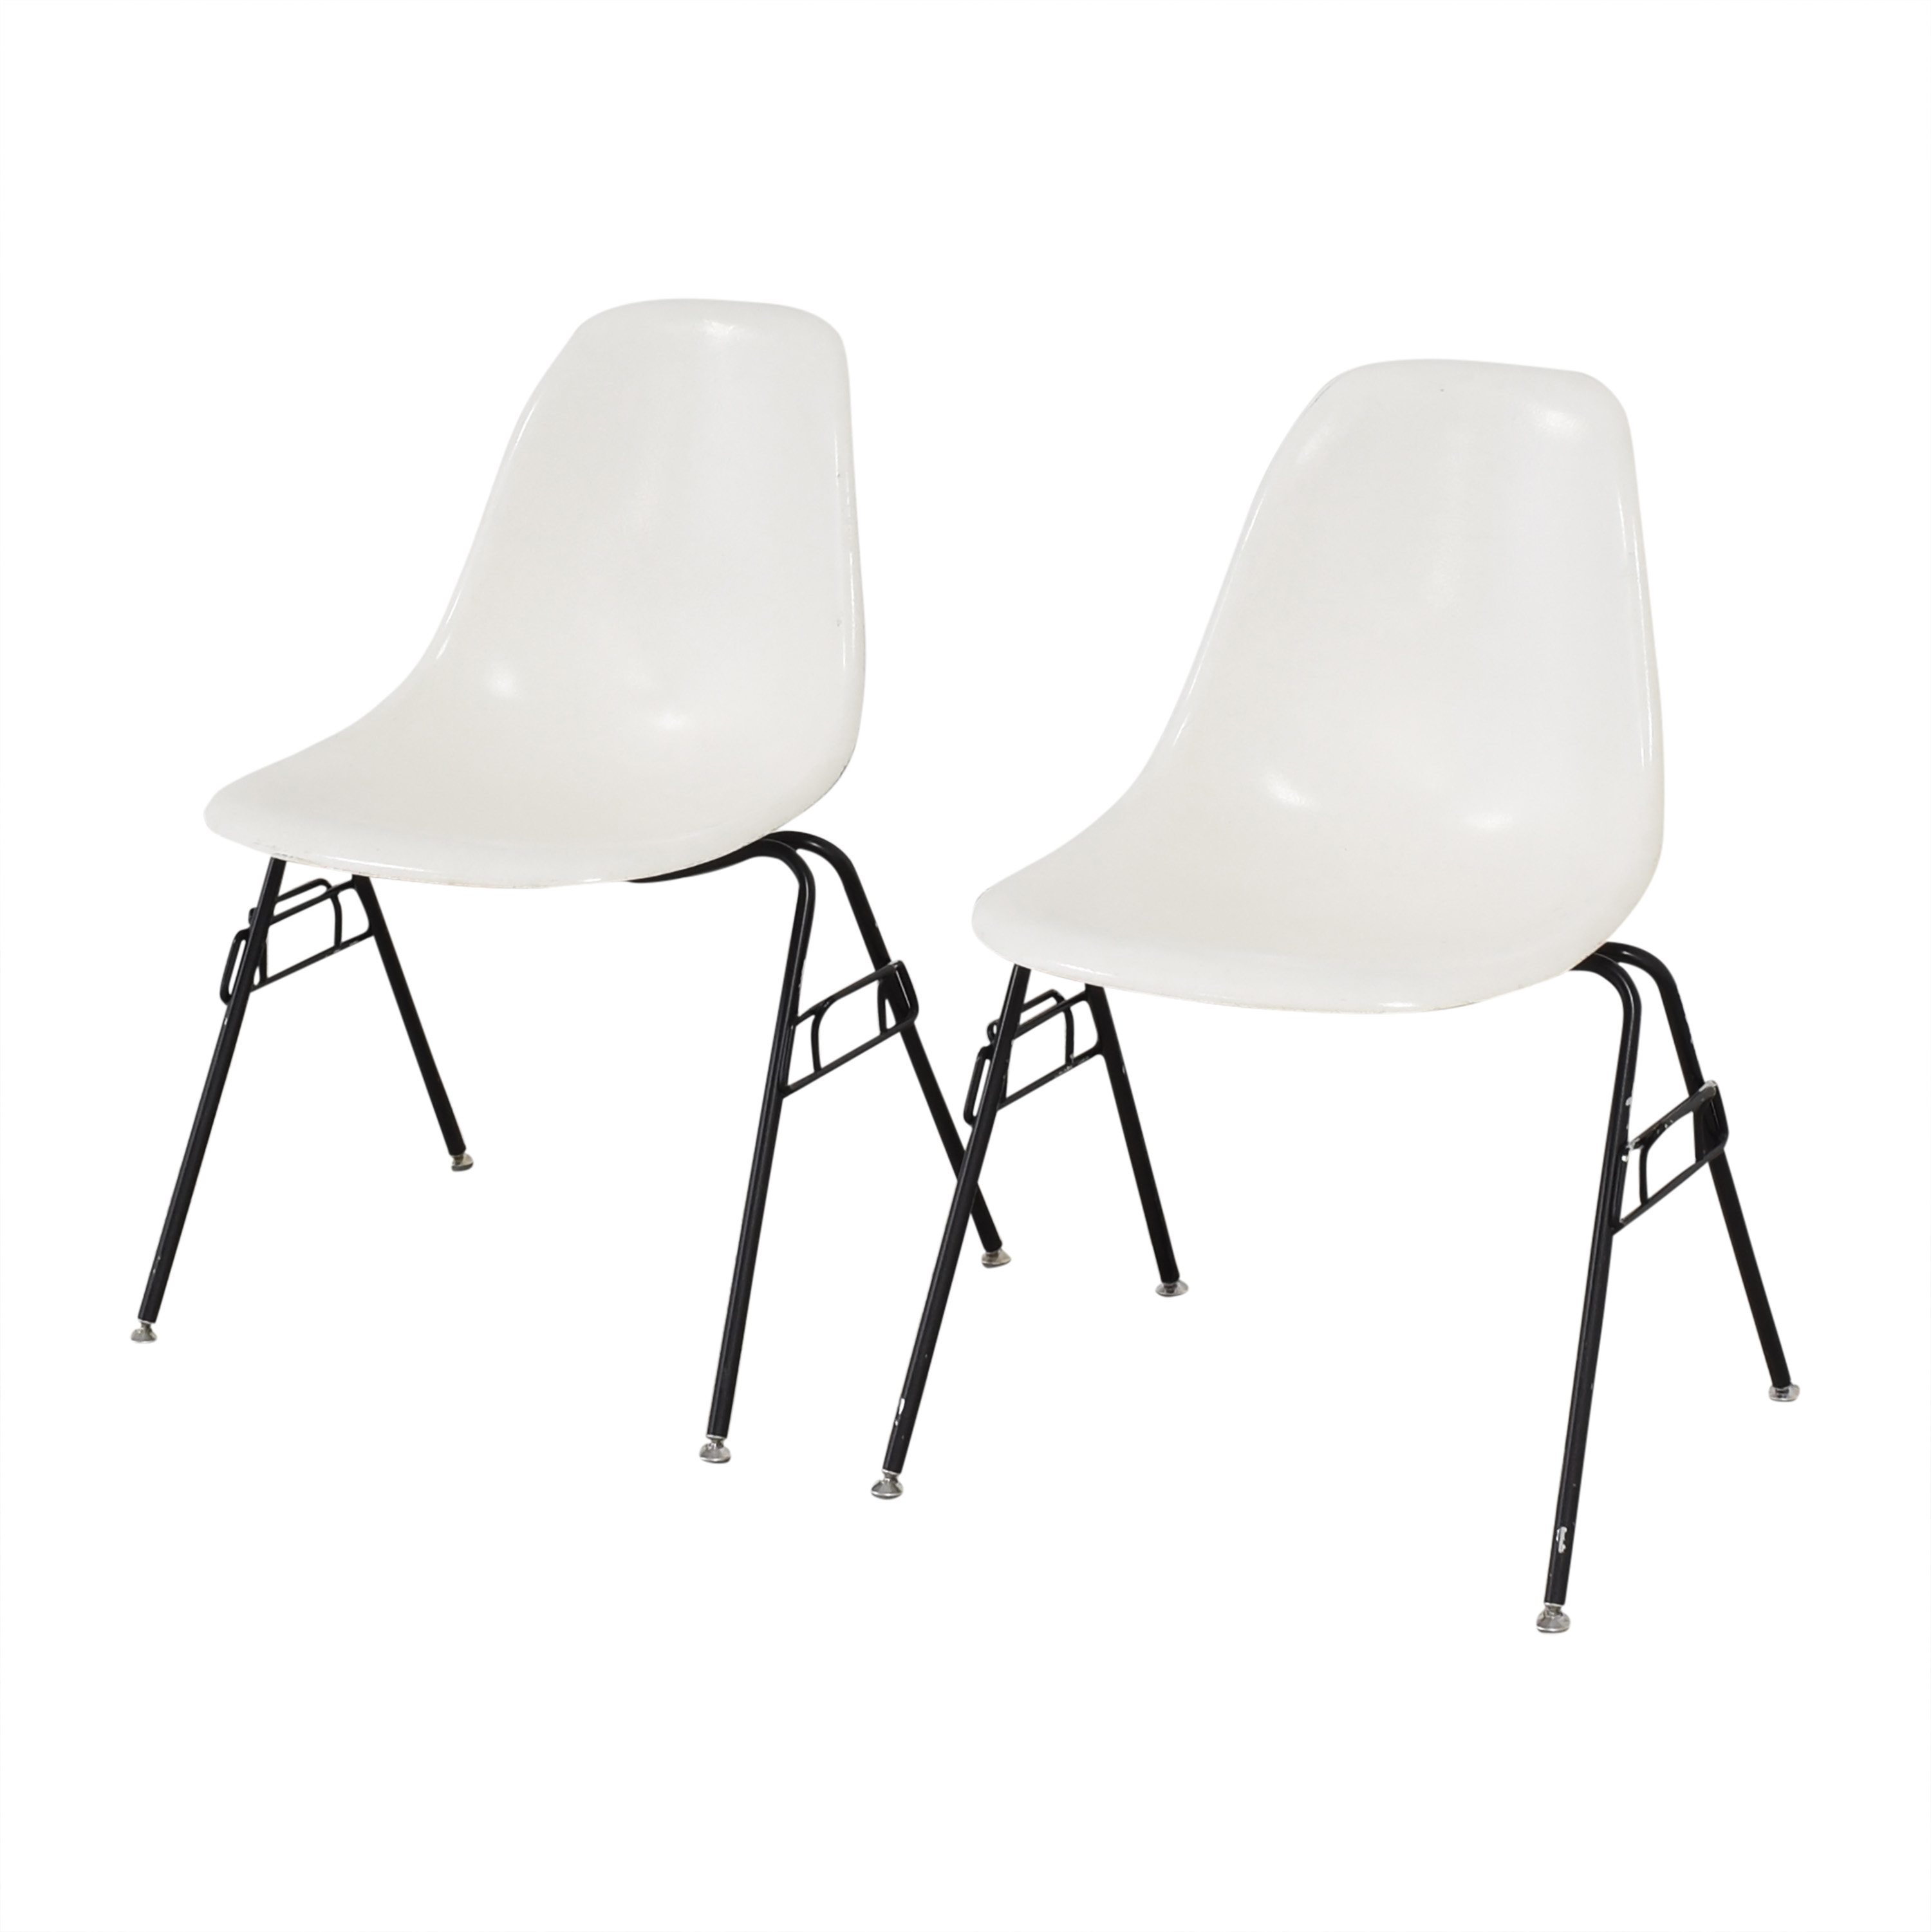 Modernica Modernica Case Study Furniture Side Shell Stacking Chairs discount